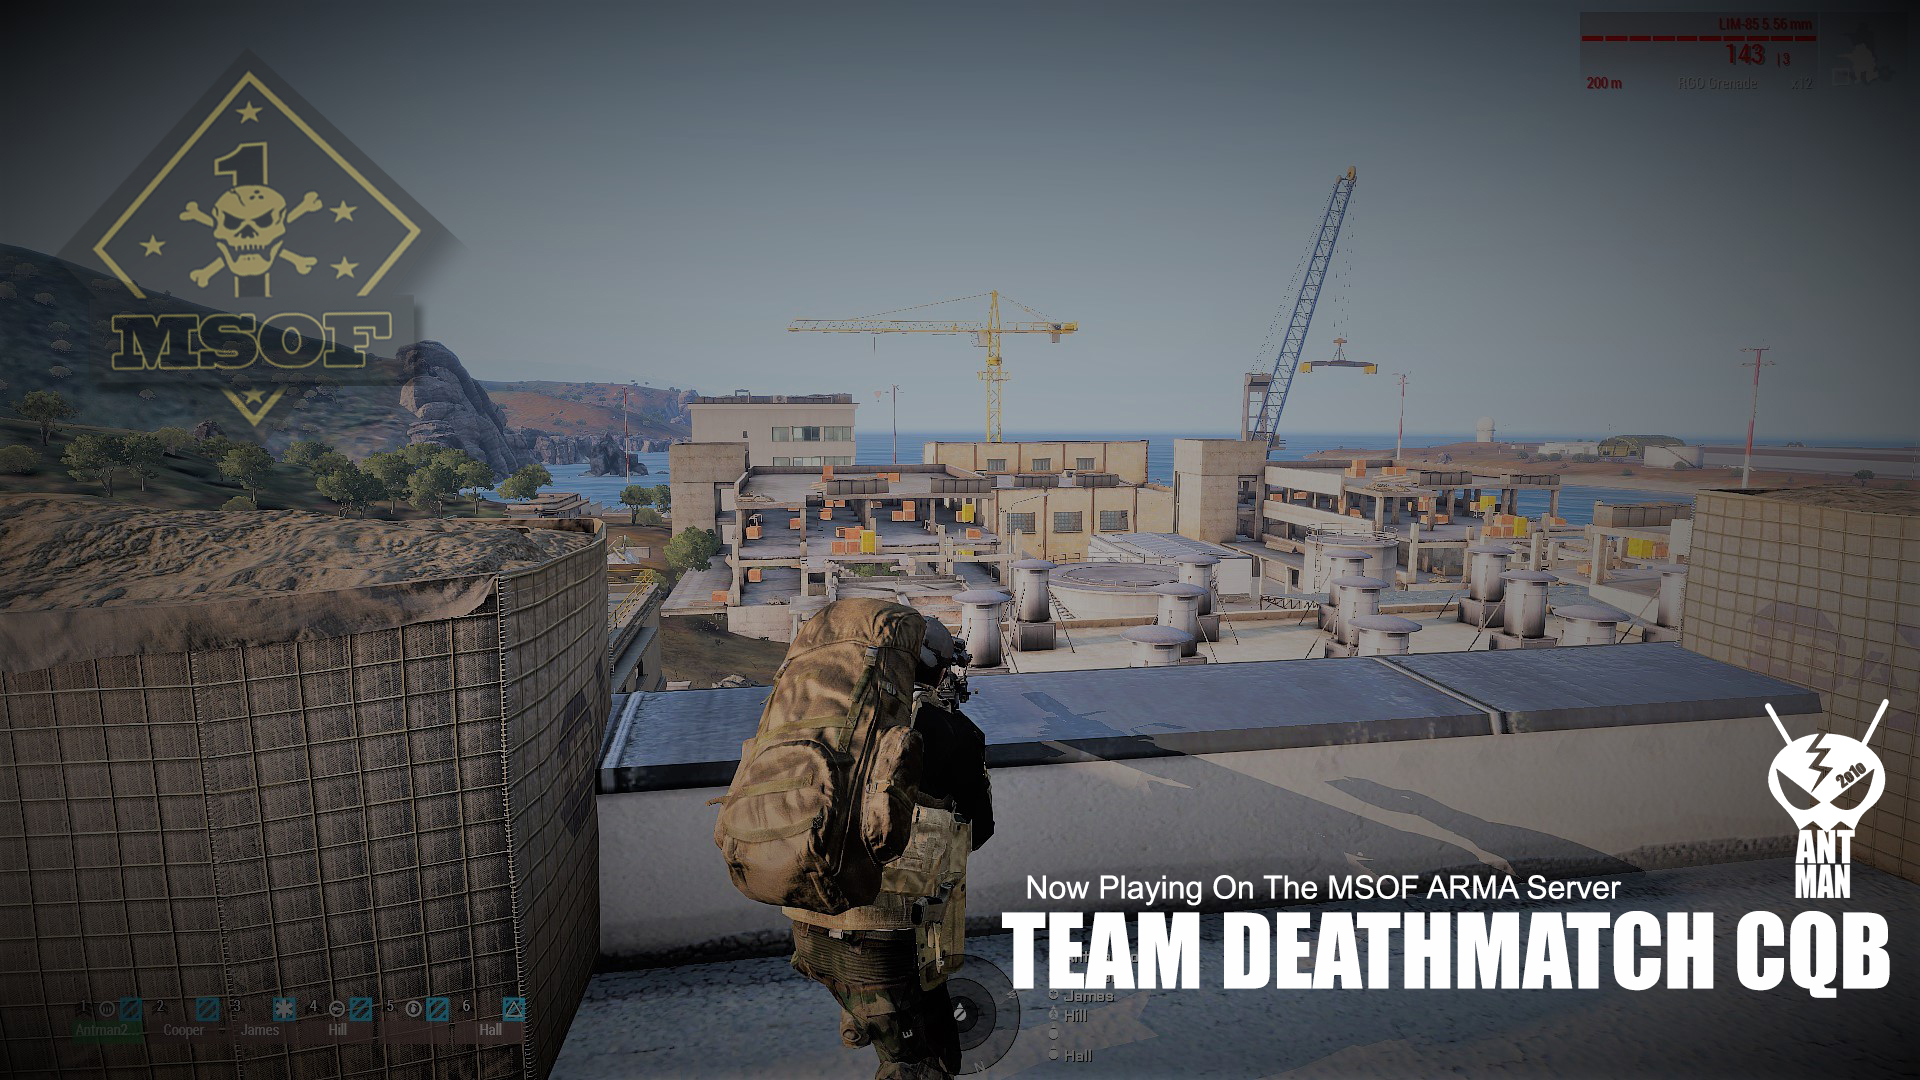 TeamDeath Match CQB